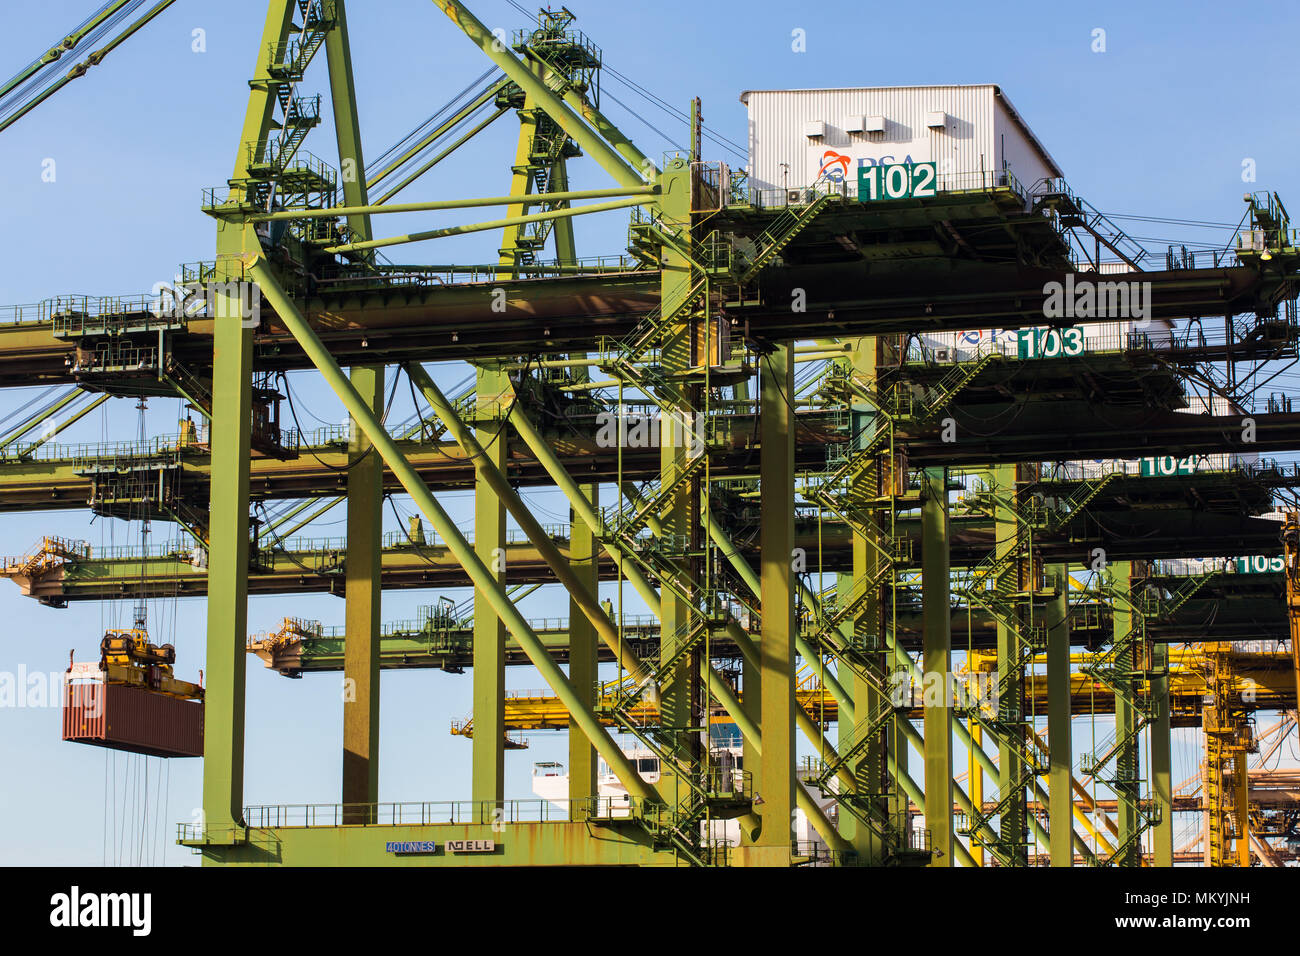 Close up view of the container cranes in lifting process - Stock Image